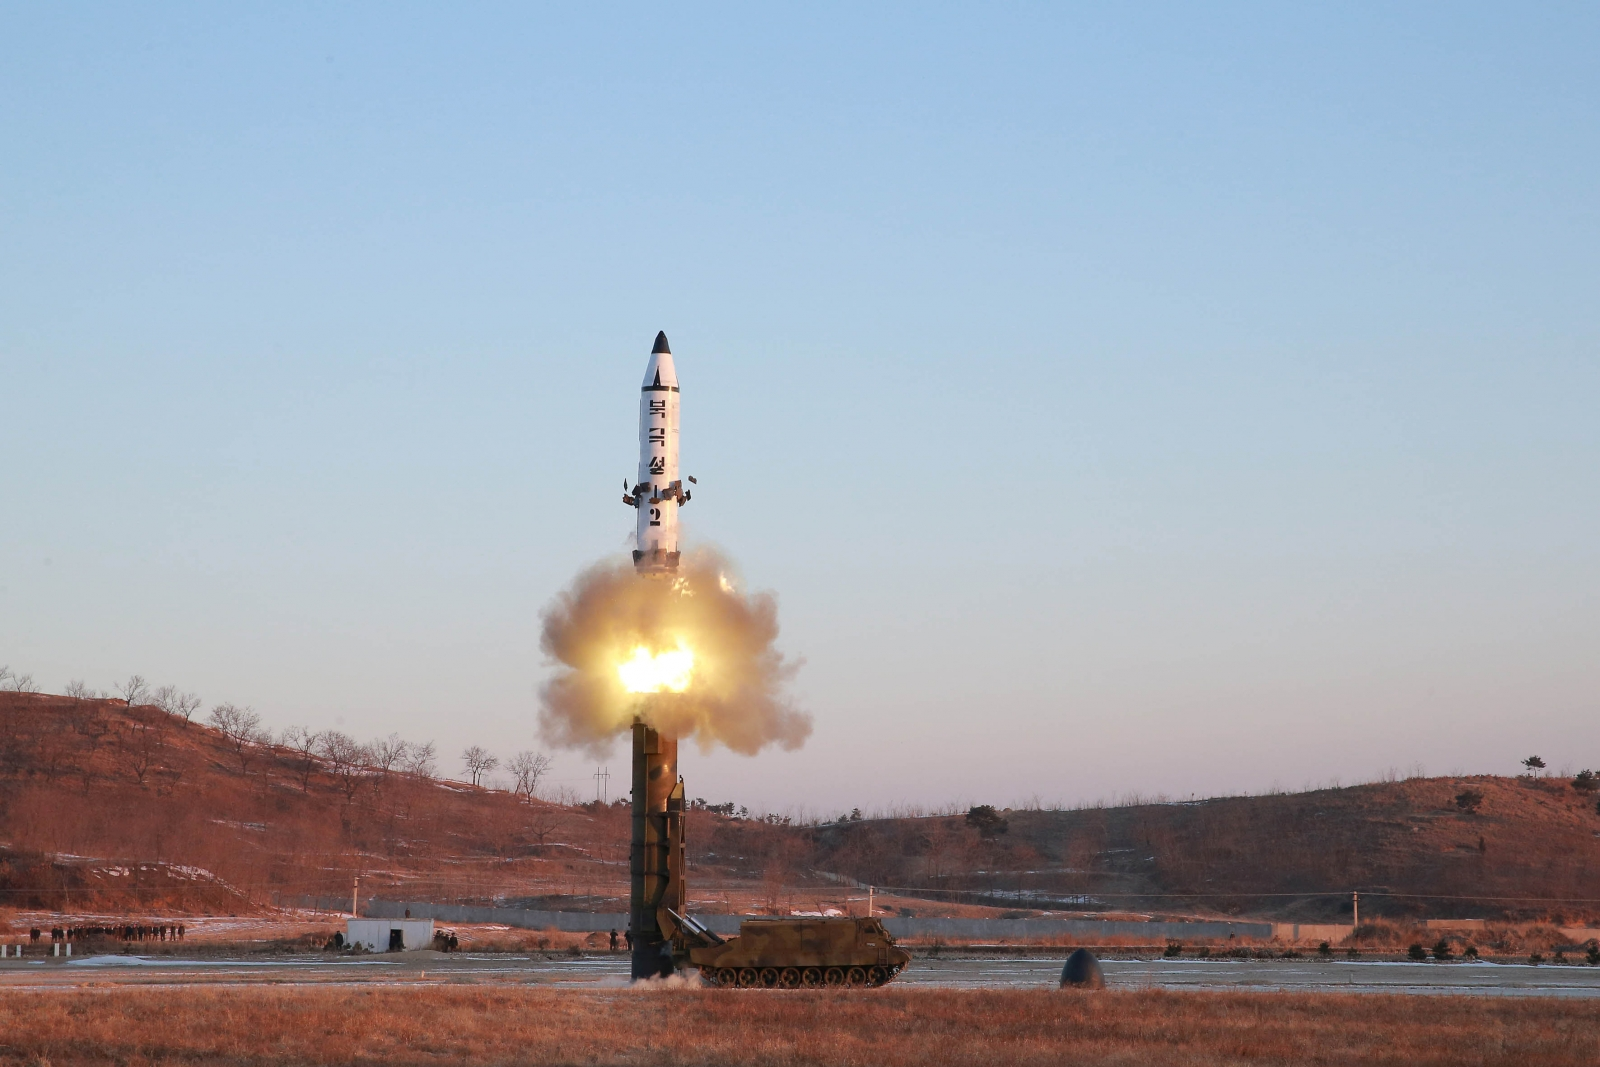 IRBM North Korea